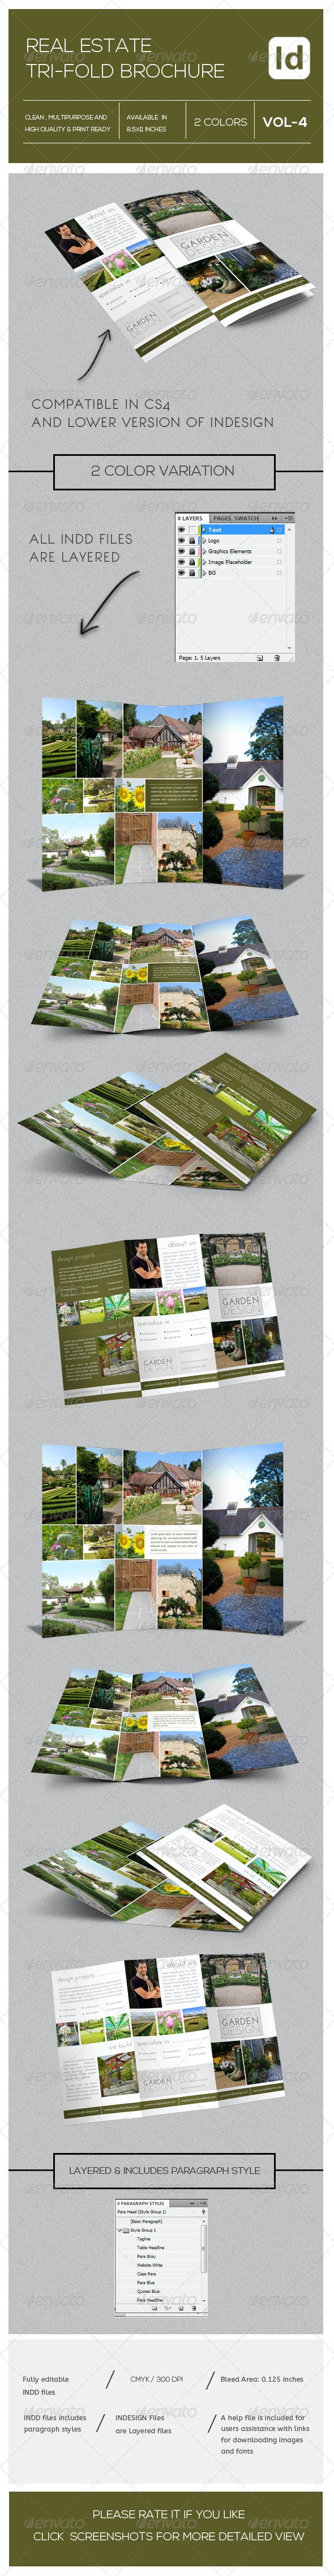 Real Estate Tri-Fold Brochure Vol-4 - Brochures Print Templates